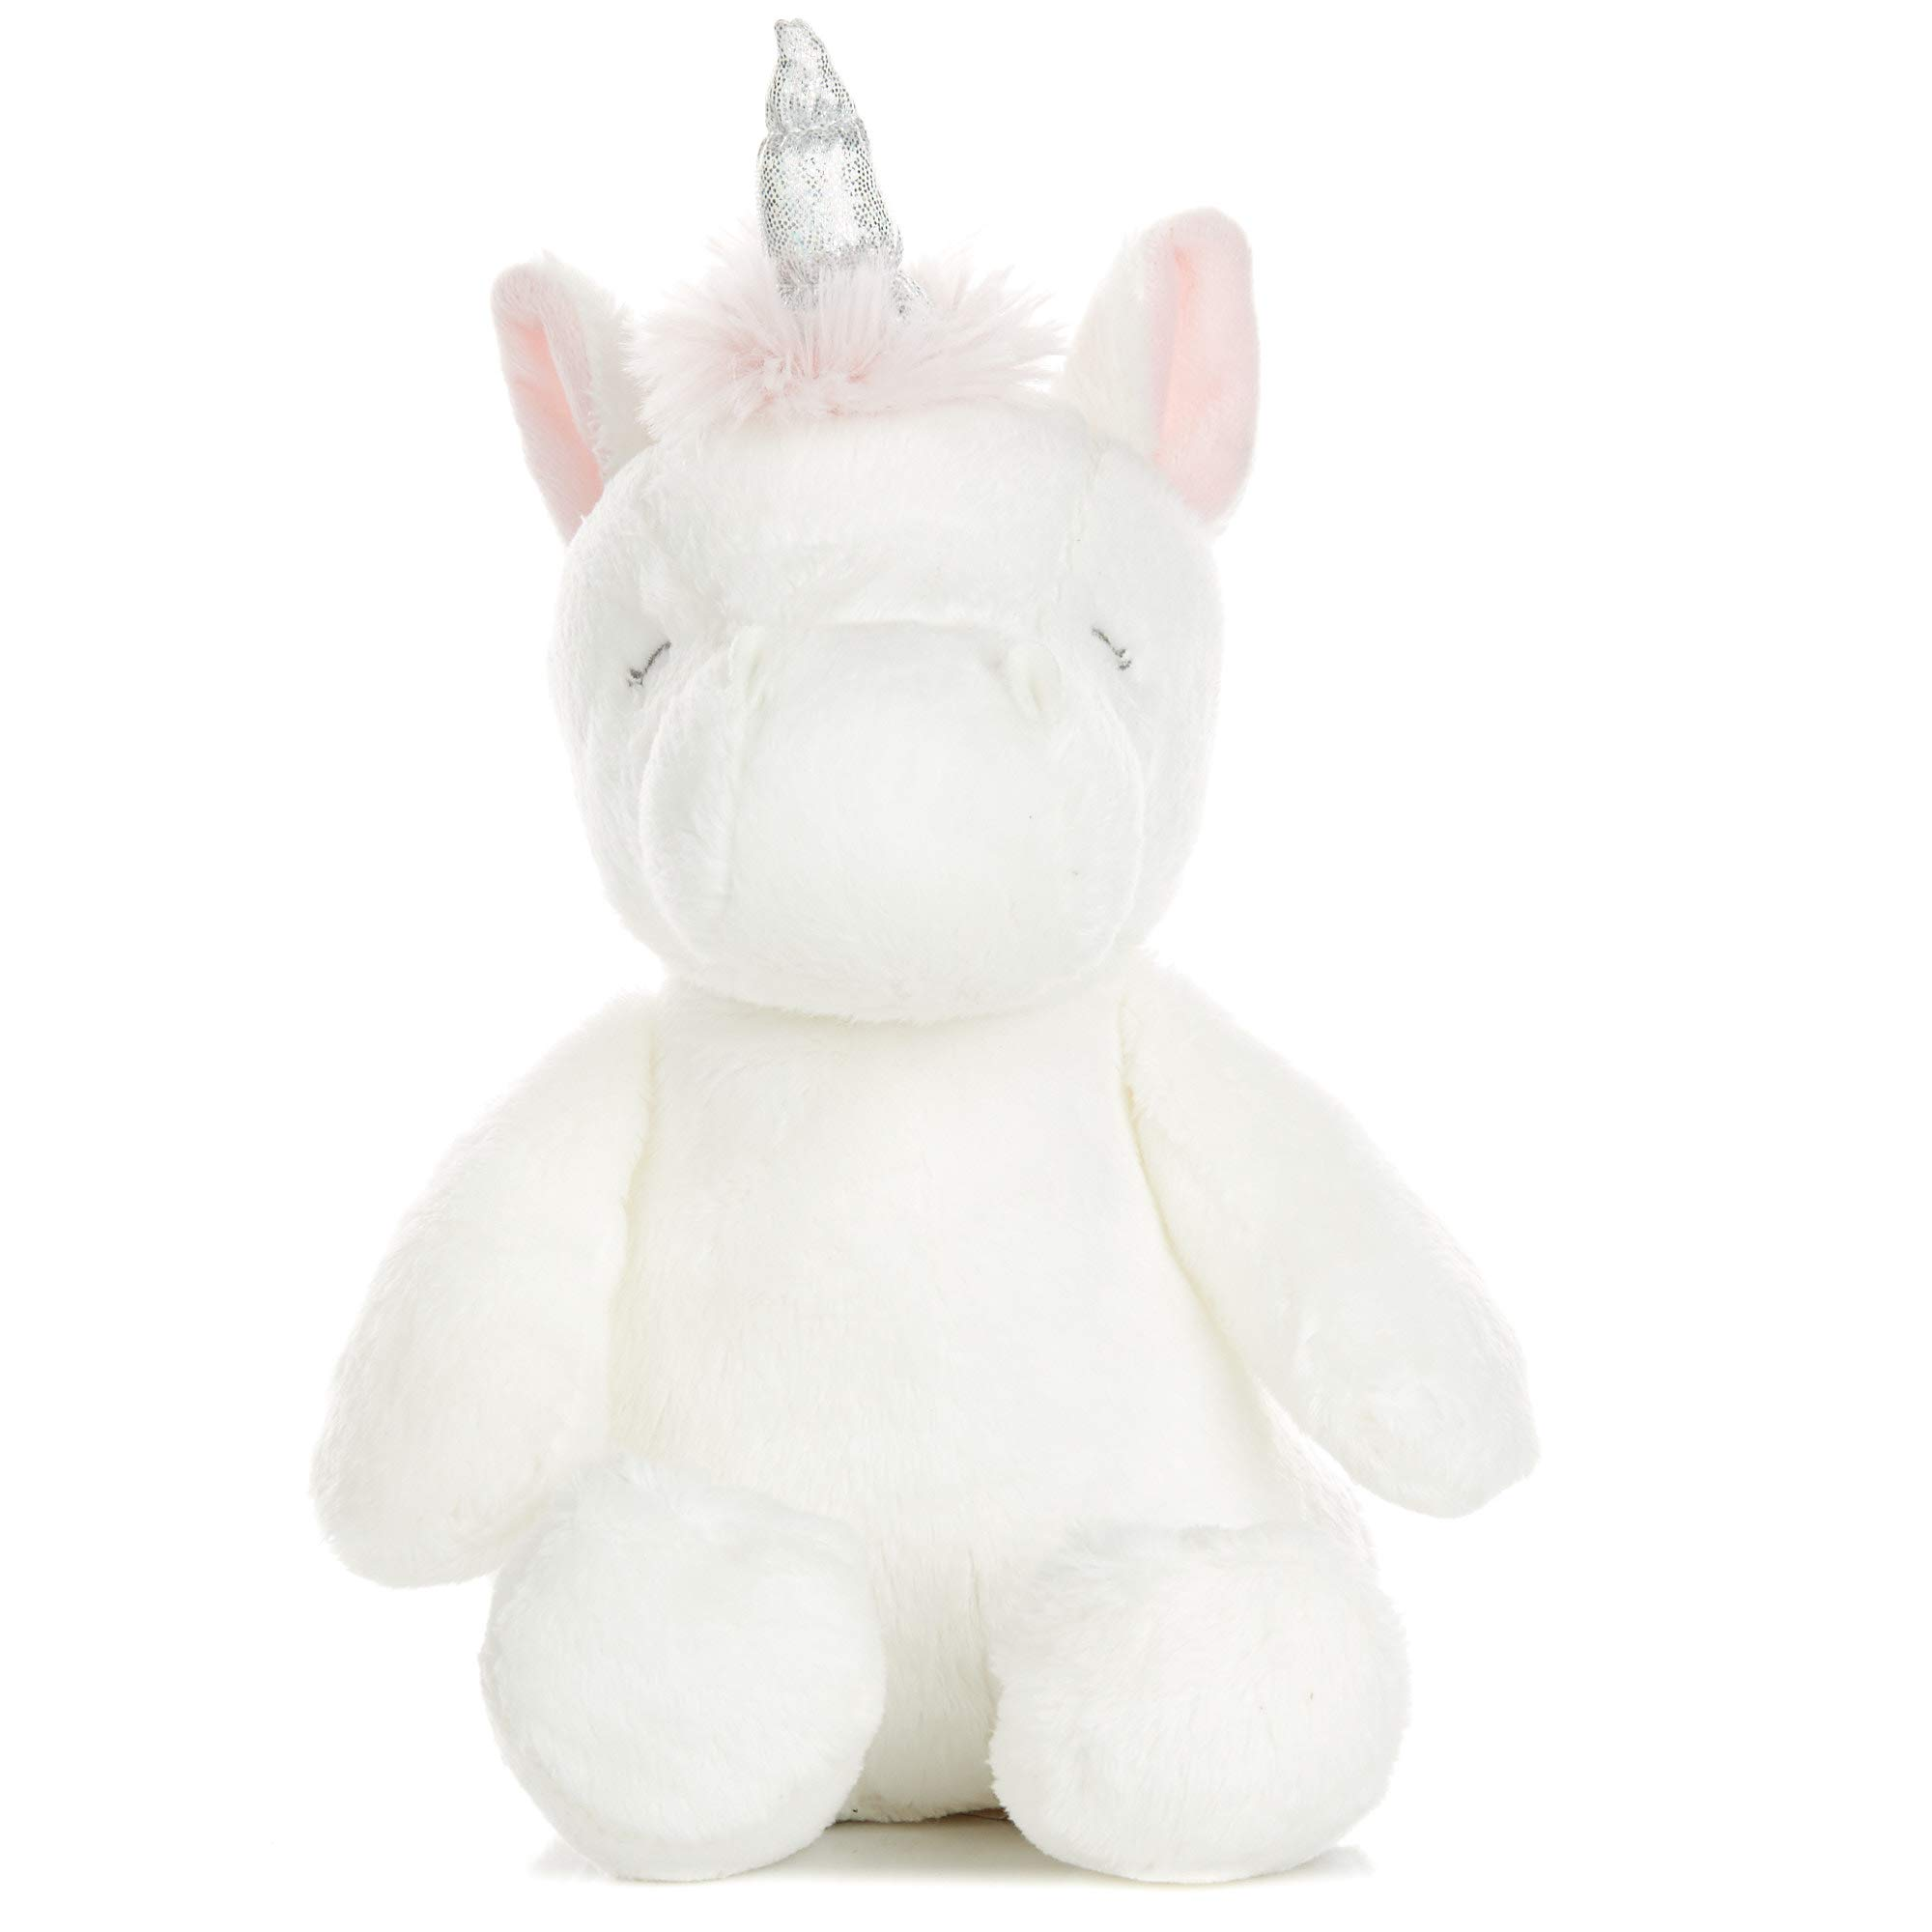 KIDS PREFERRED Carter's Waggy Musical Unicorn Stuffed Animal Plush Toy, 9 Inches